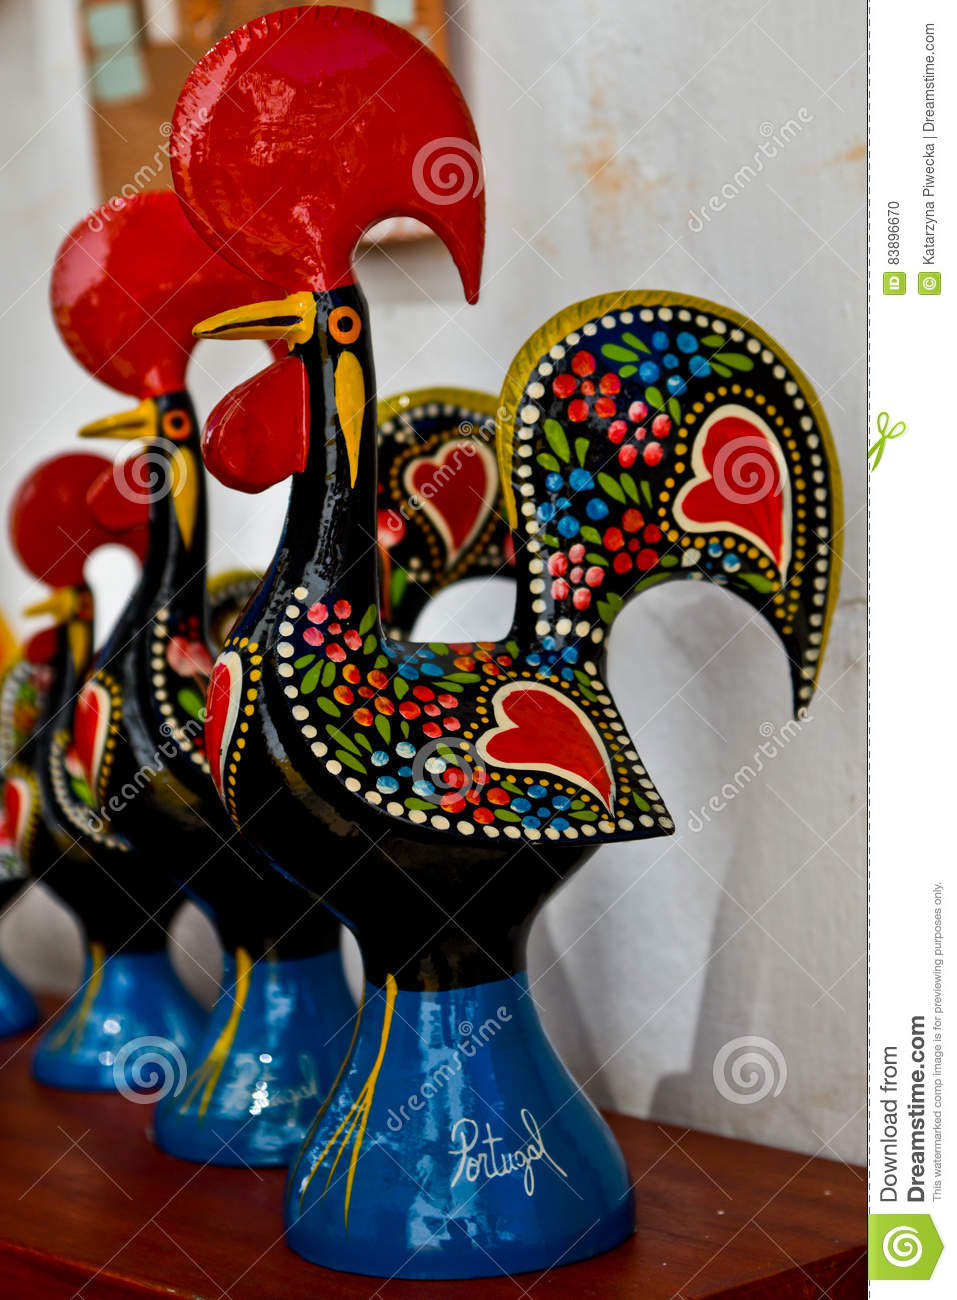 Portugal Ceramic Rooster Stock Photo Image Of Portuguese 83896670